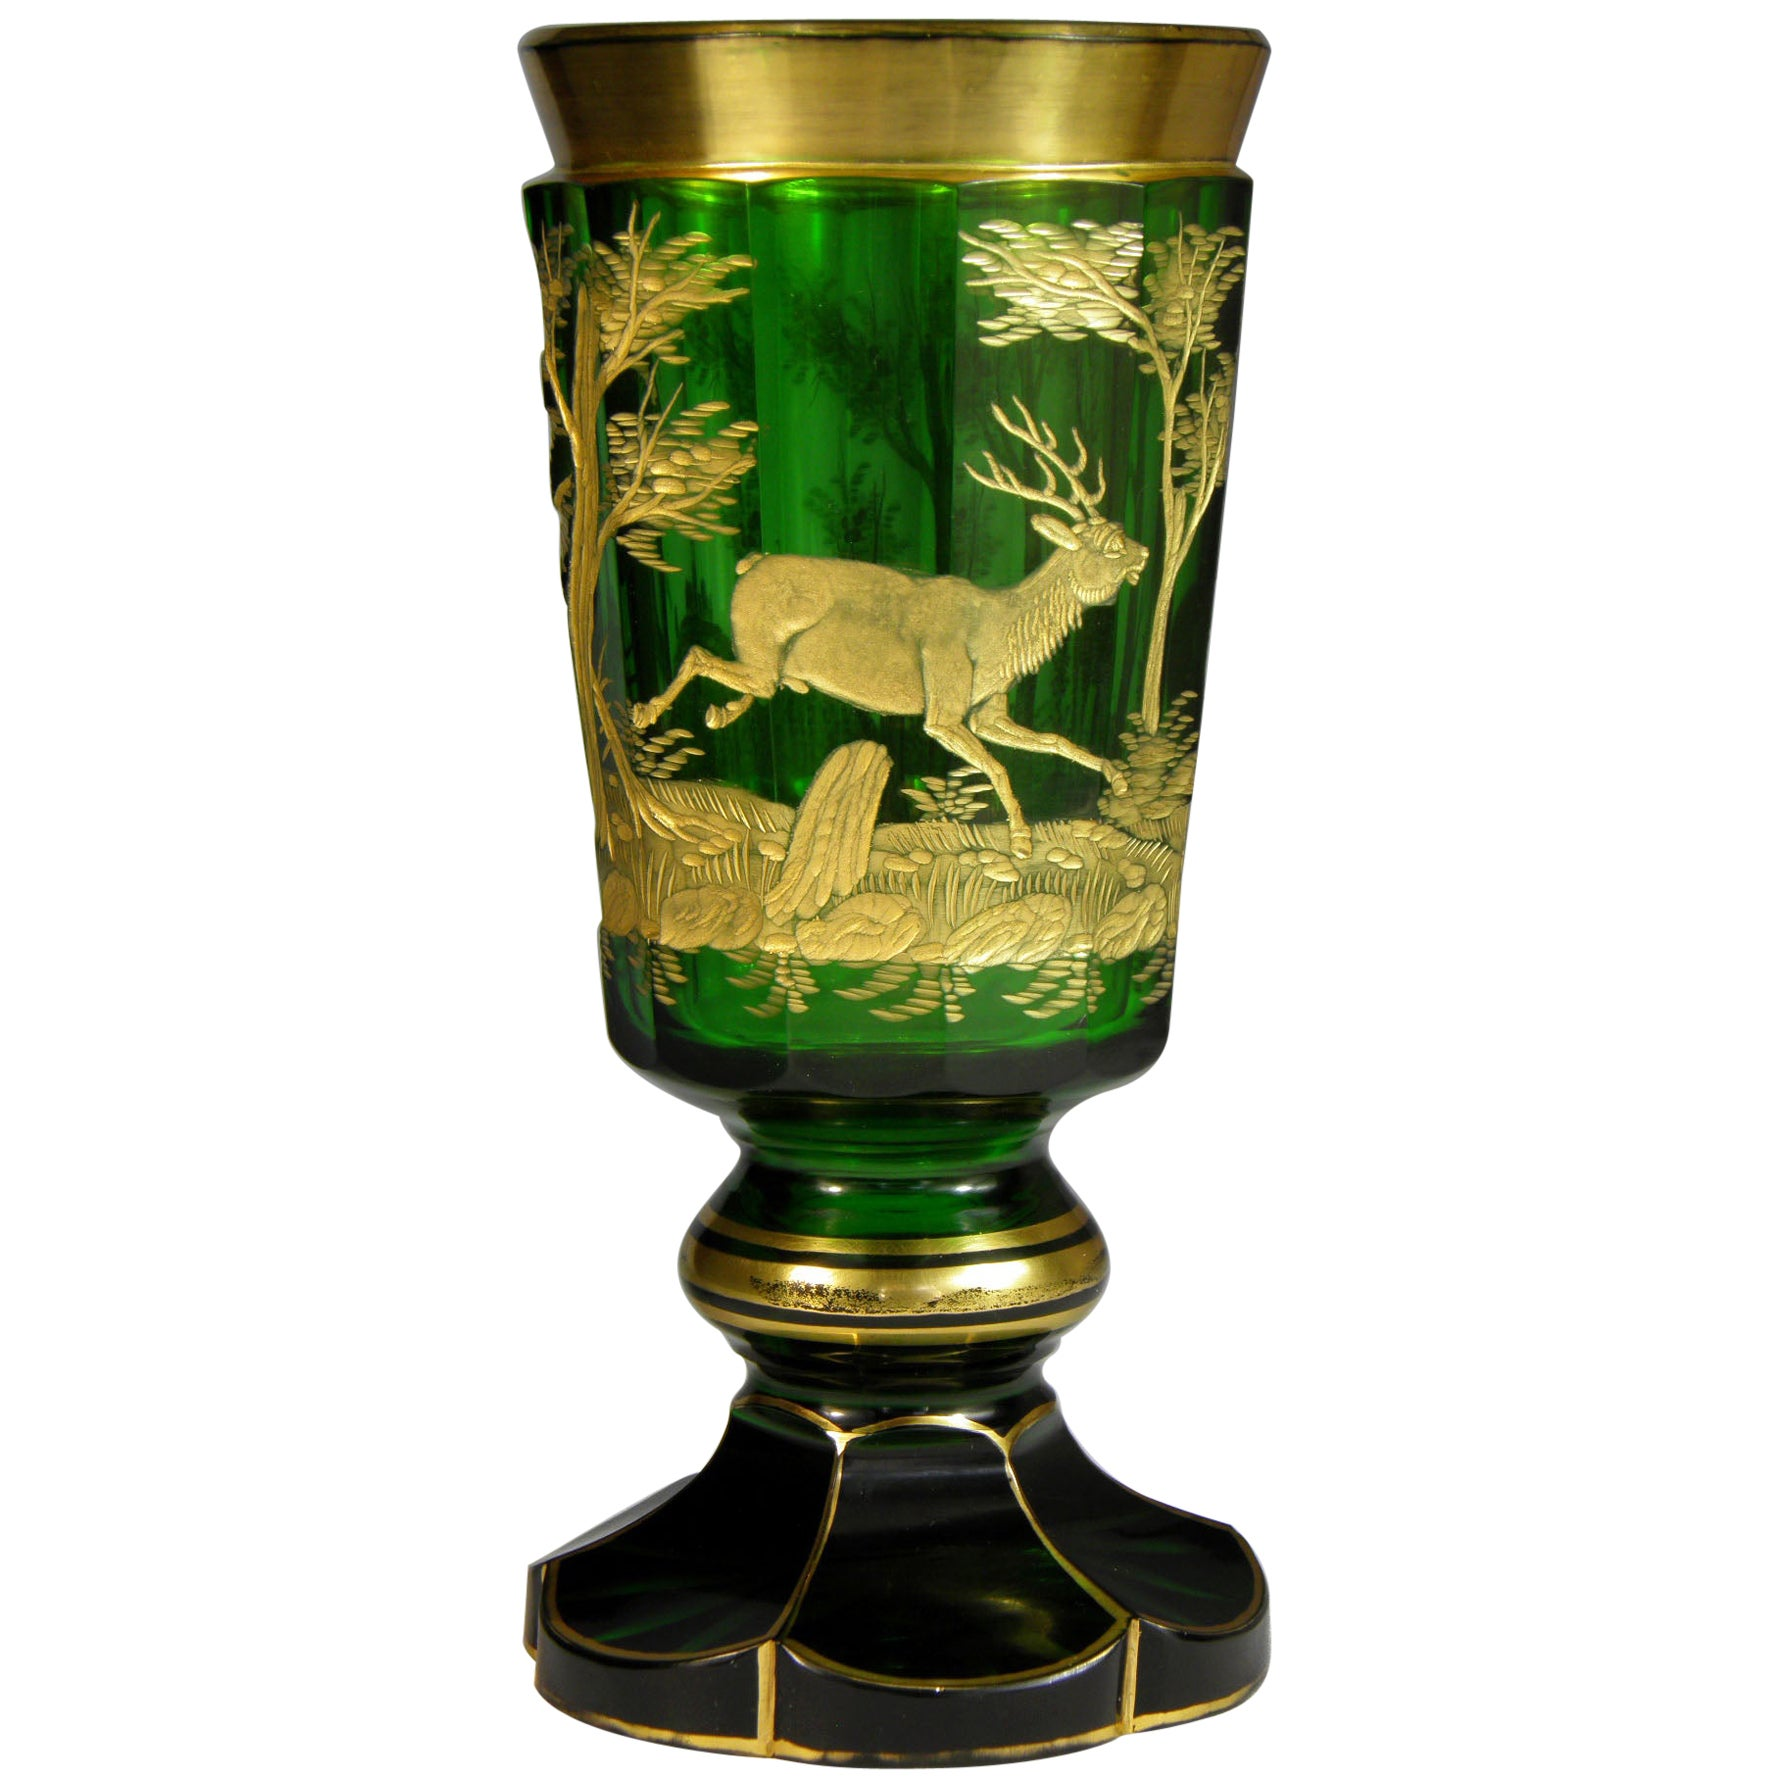 Bohemian European Glass Goblet Hunting Motive, 19th Century